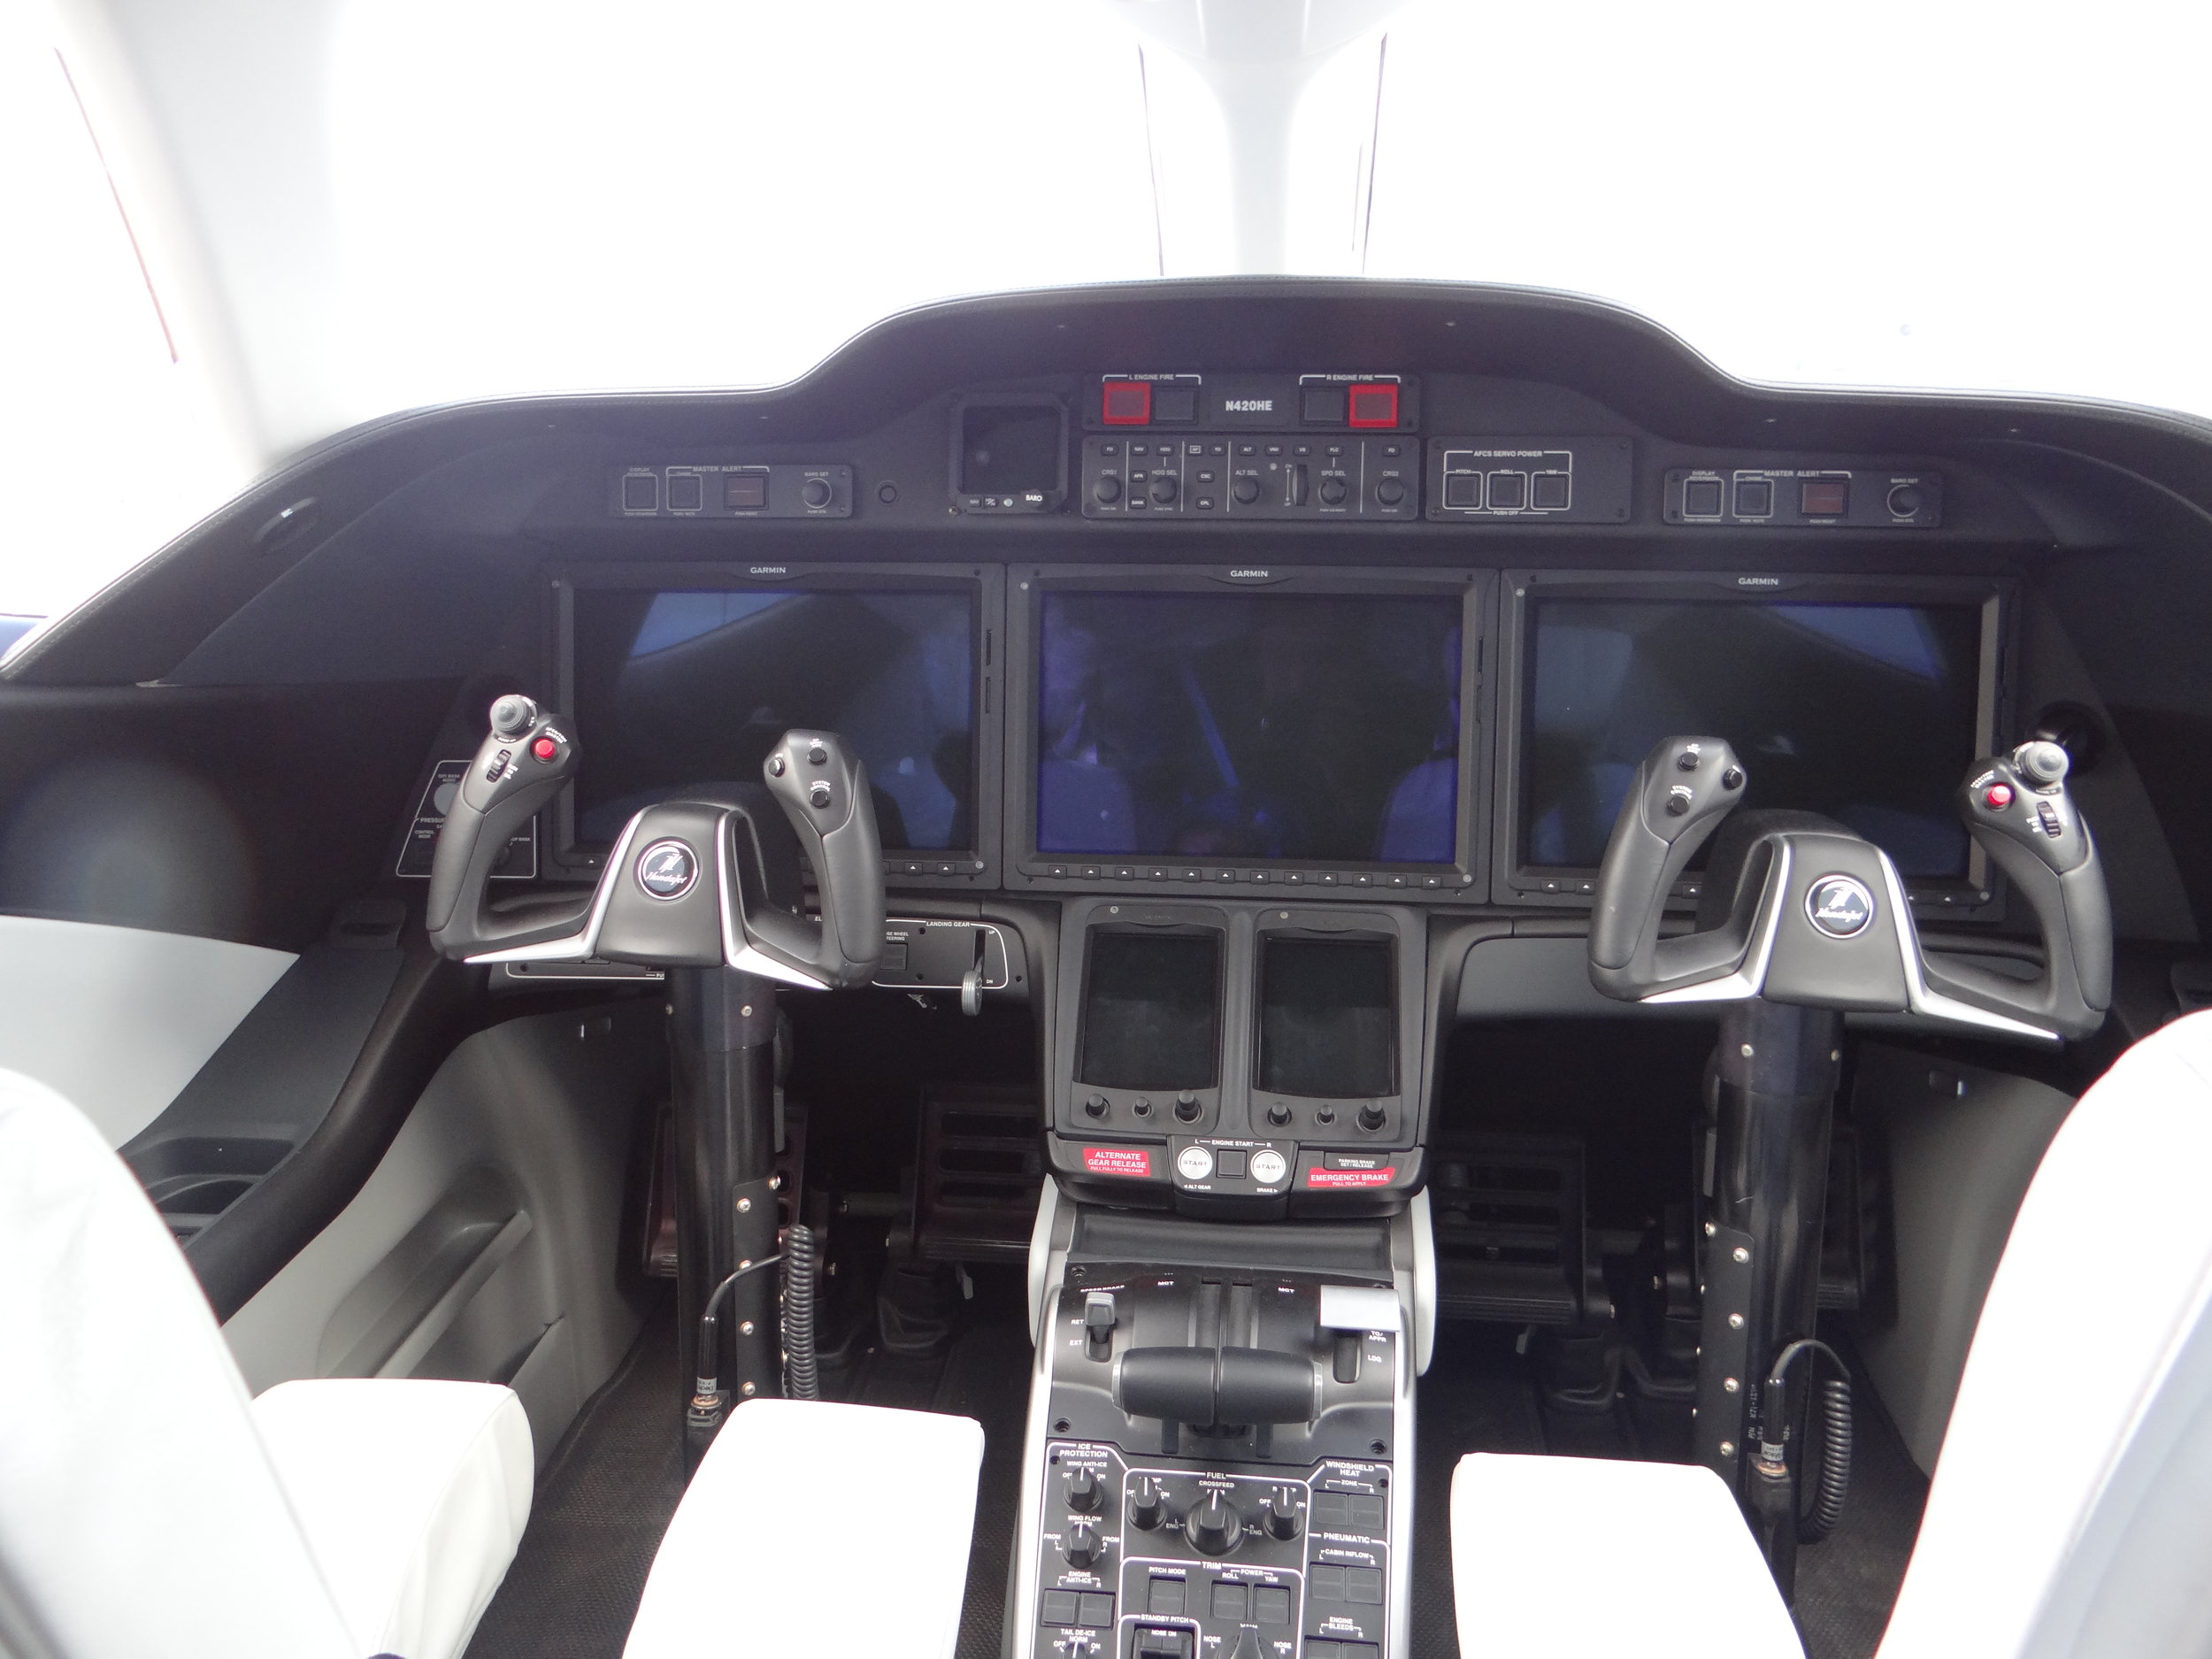 For those interested, here's the Honda Jet cockpit